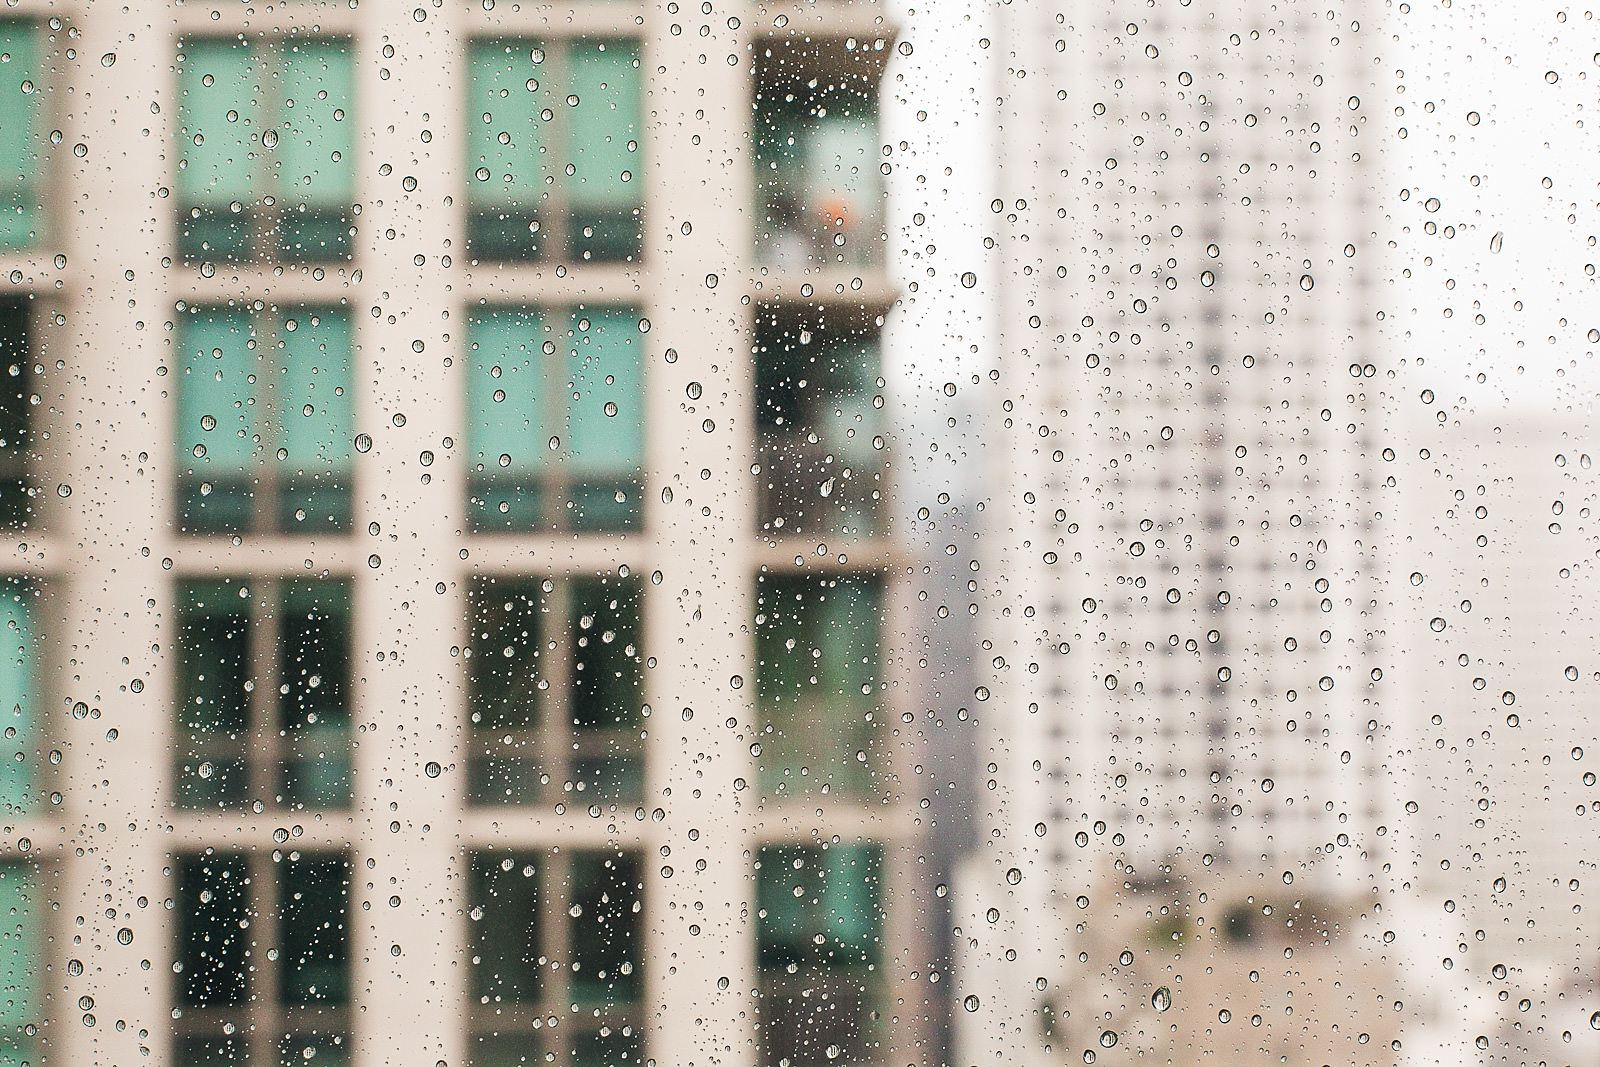 02 rain drops on window - Ivy Room Wedding // Audrey + Tyler